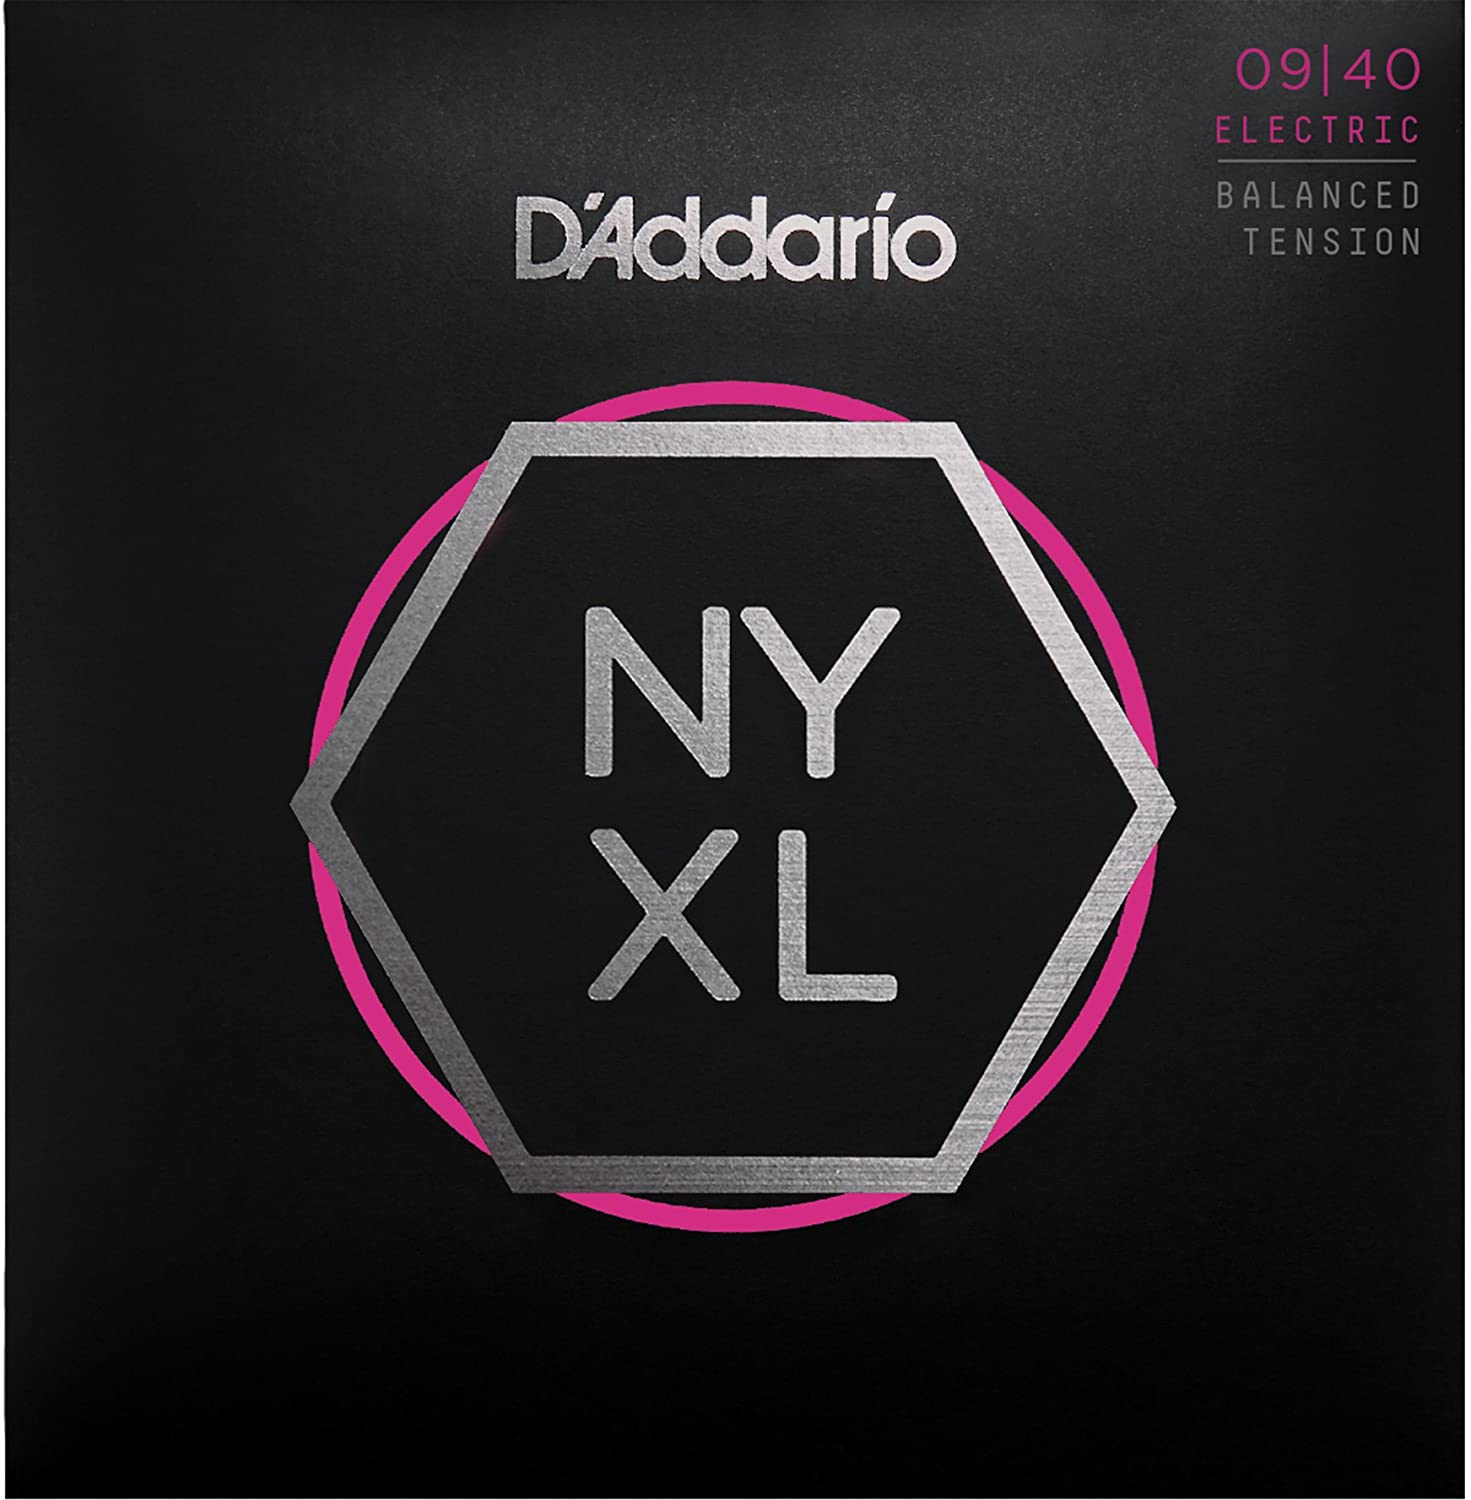 Cuerdas para Guitarra Eléctrica DAddario NYXL0940BT Nickel Wound, Balanced Tension Super Light, 09-40: Amazon.es: Instrumentos musicales